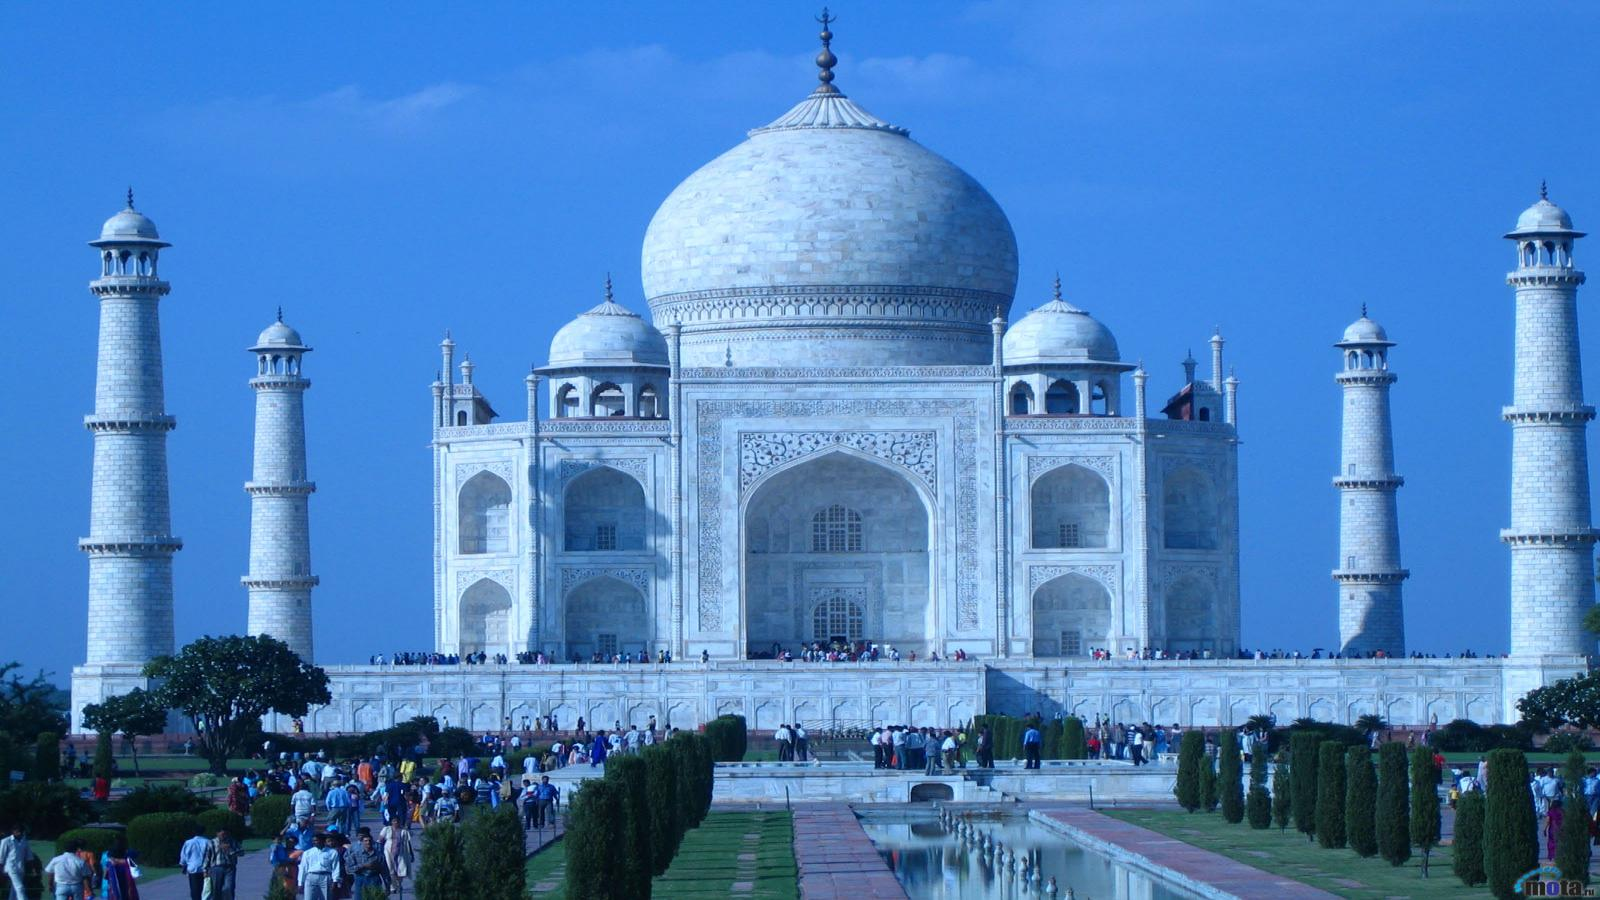 Download taj mahal wallpaper full size hd gallery - Taj mahal screensaver free download ...